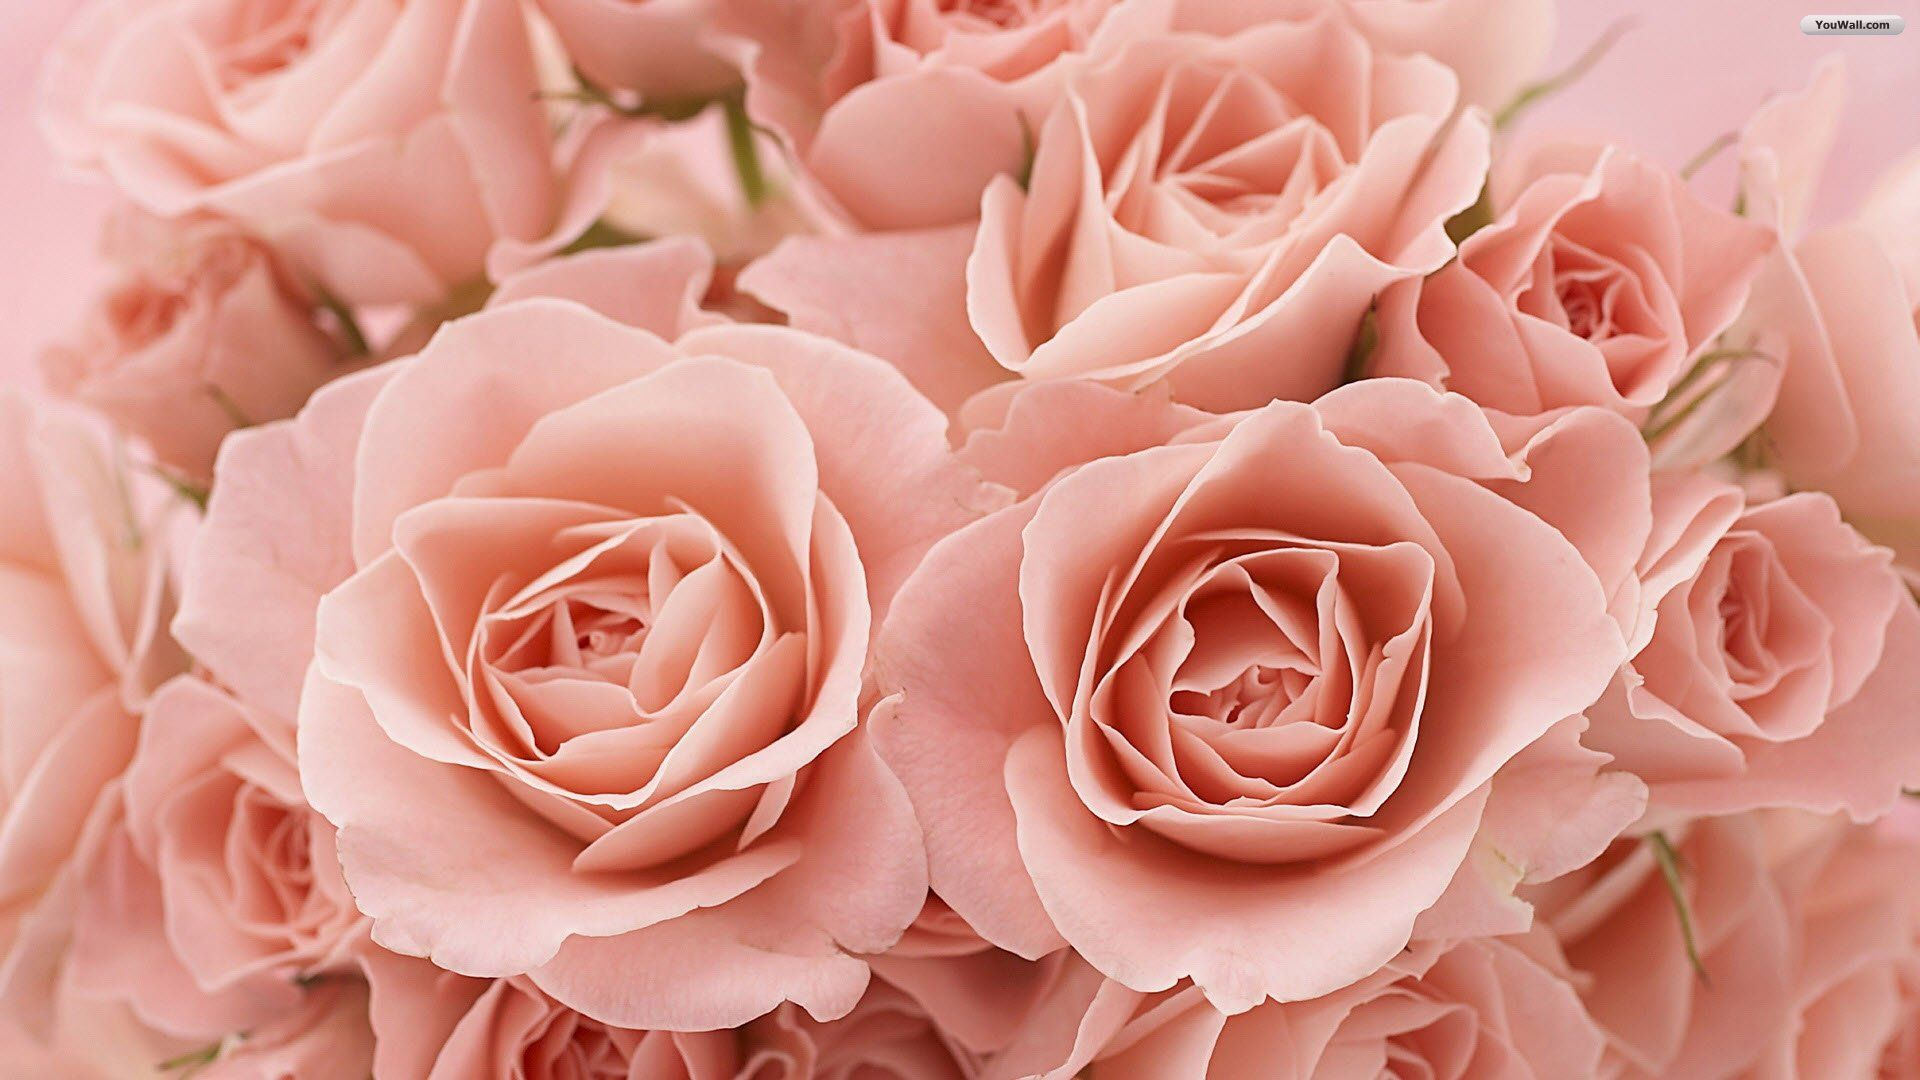 new rose types - Google Search